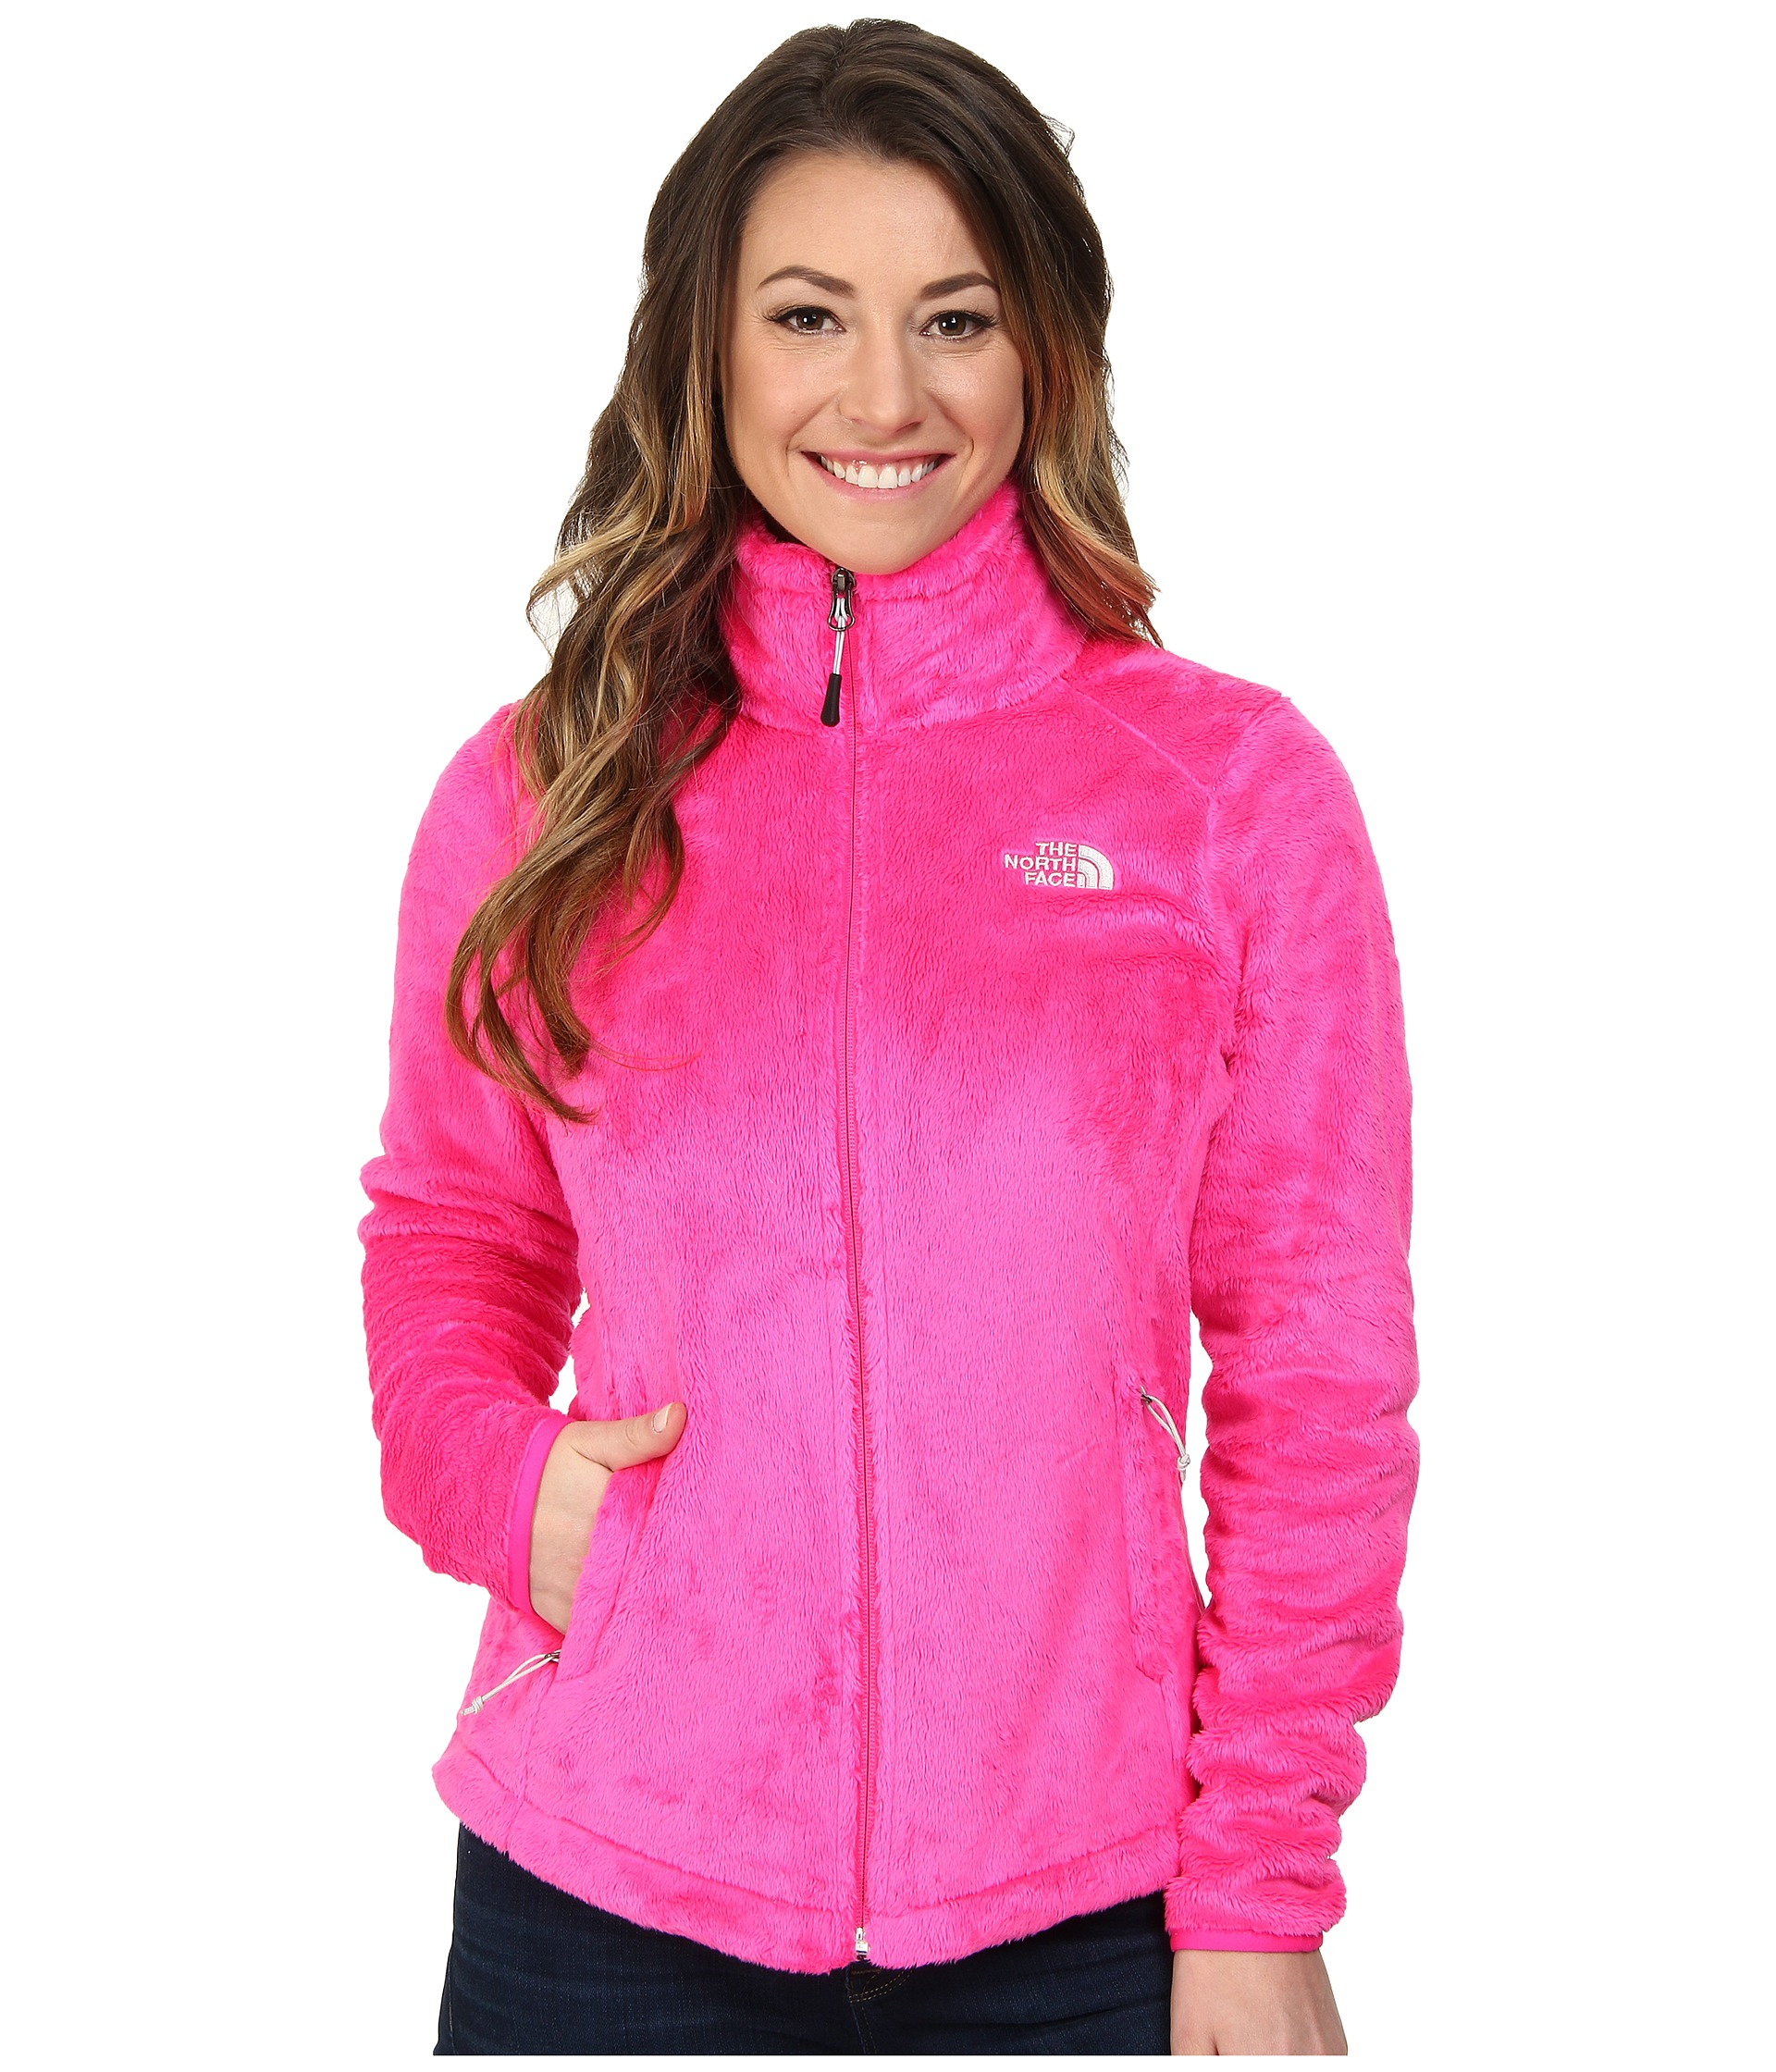 234168b52 The North Face Pink Osito 2 Jacket